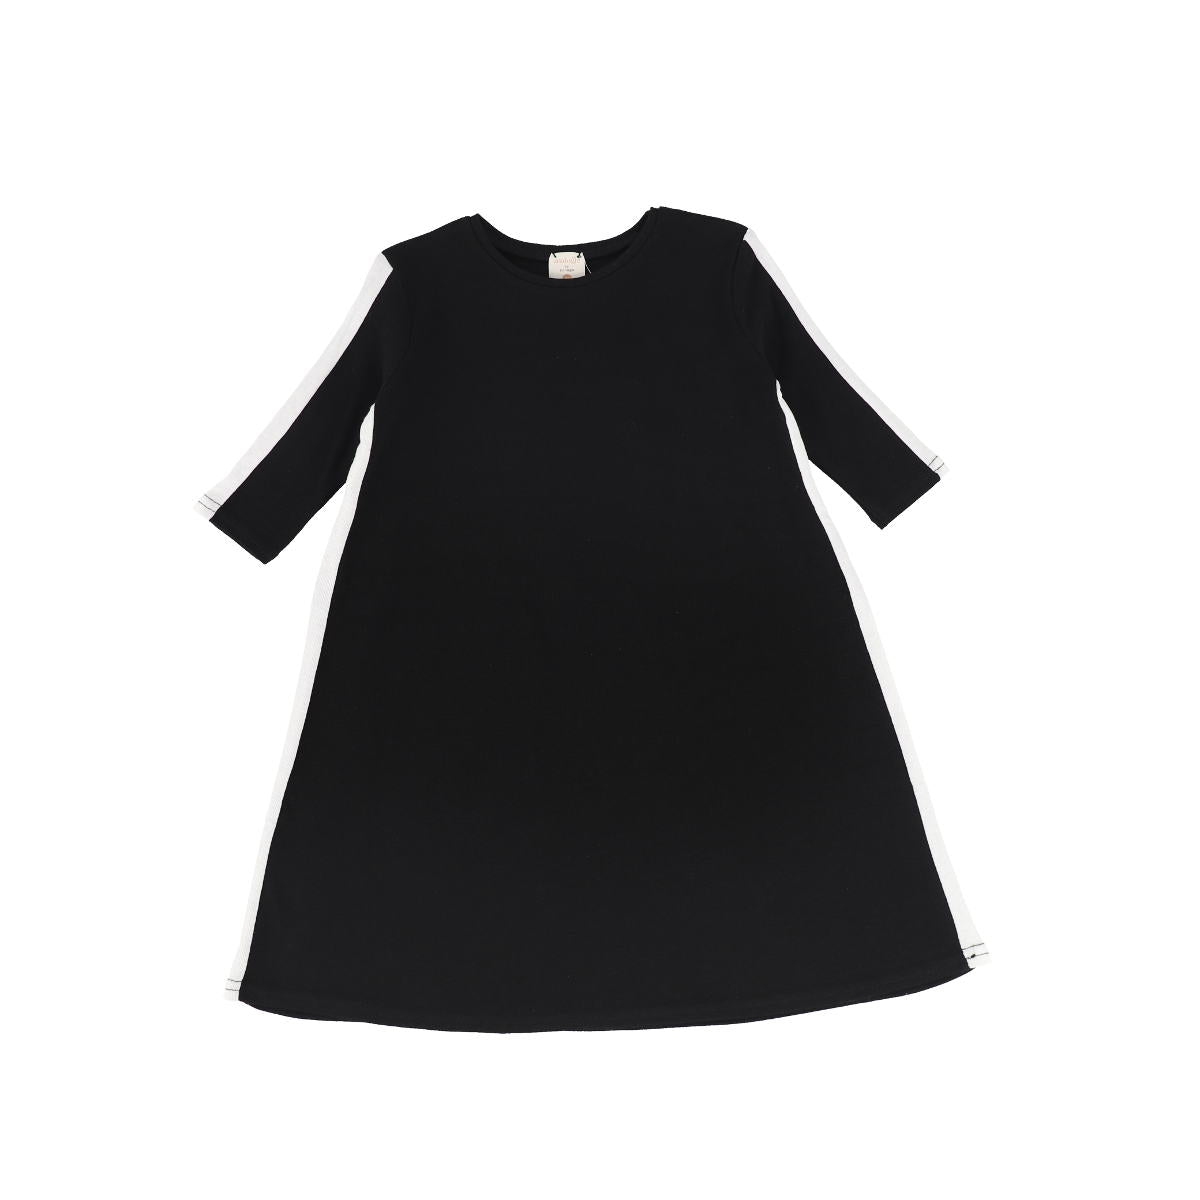 Analogie BlackWhite Three Quarter Sleeve Linear Dress